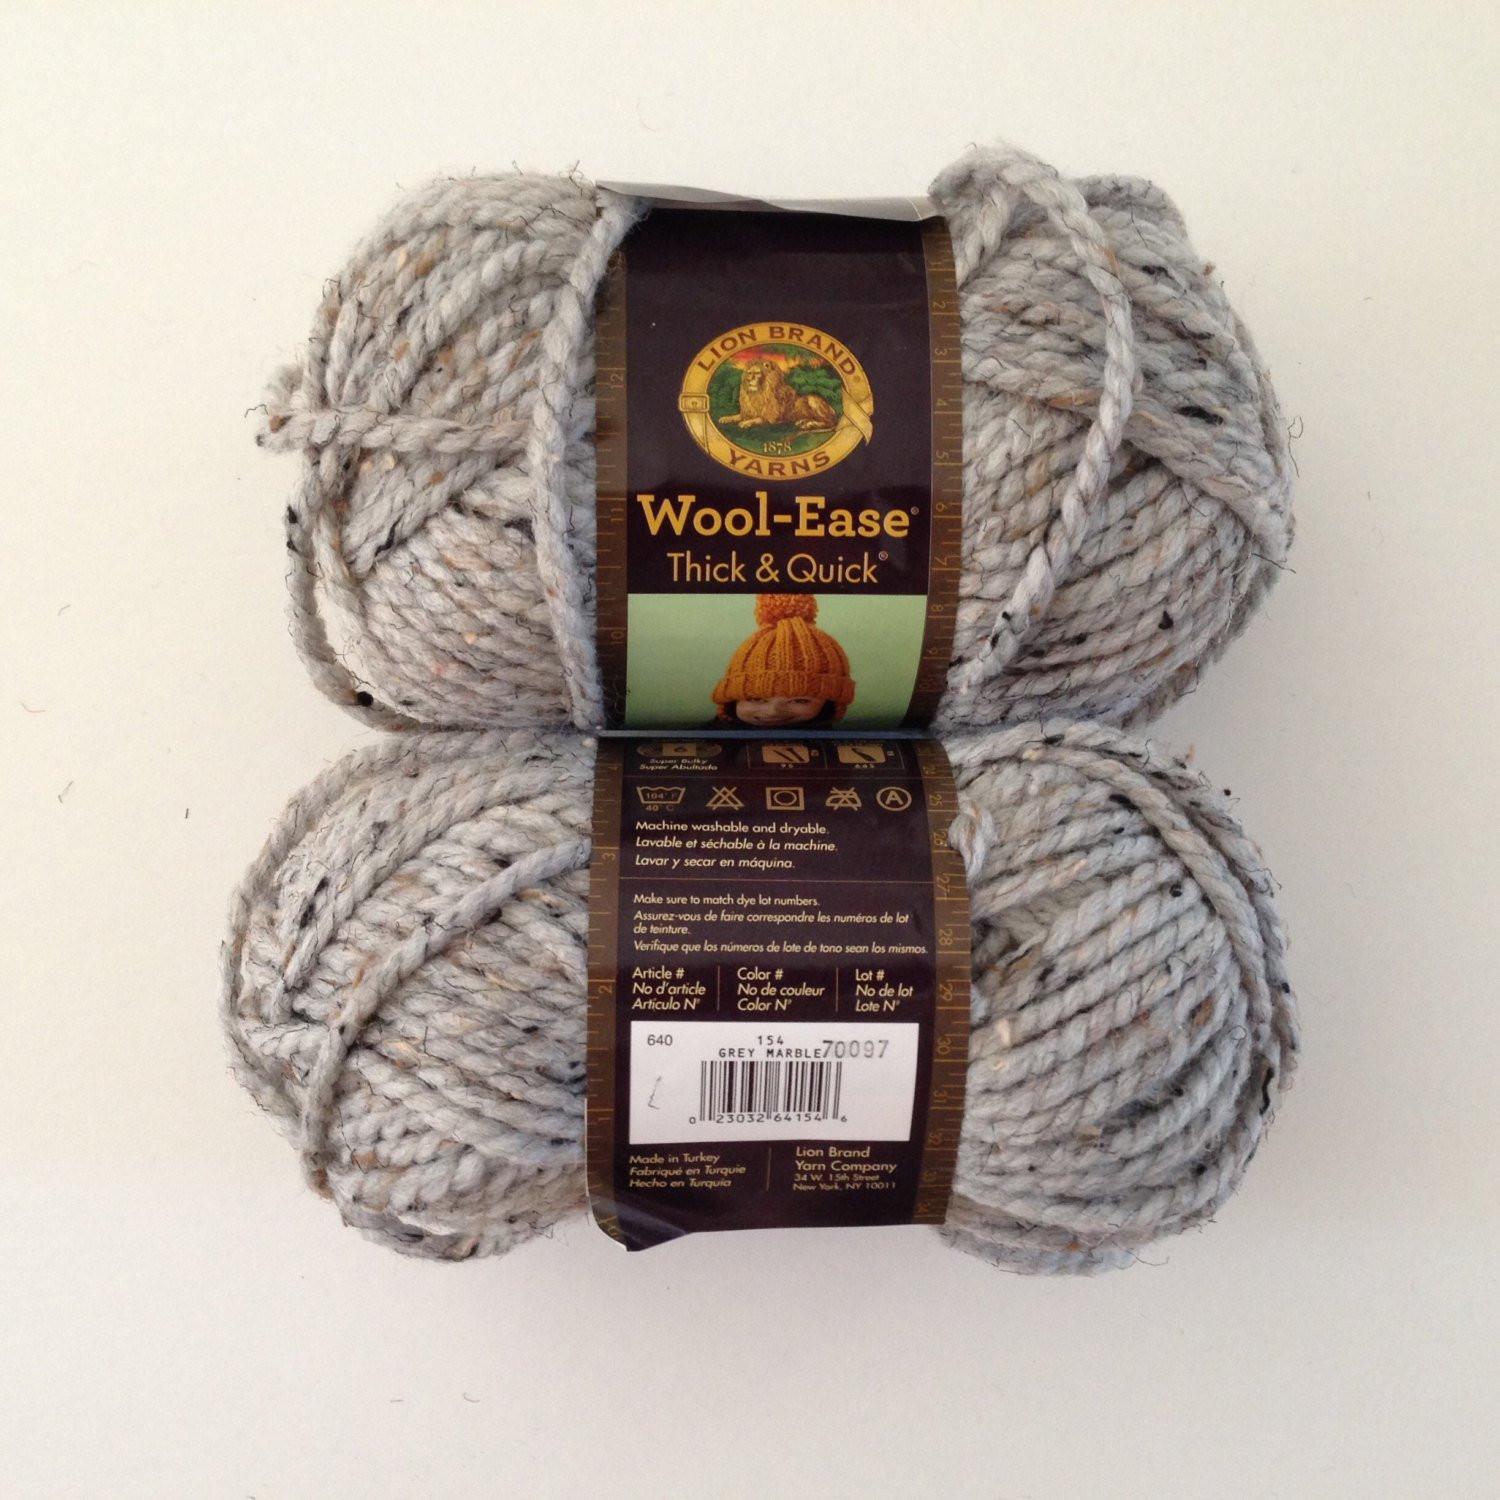 6 Super Bulky Yarn Inspirational Lion Brand Wool Ease Thick and Quick Yarn Super Bulky Grey Of Gorgeous 50 Pics 6 Super Bulky Yarn